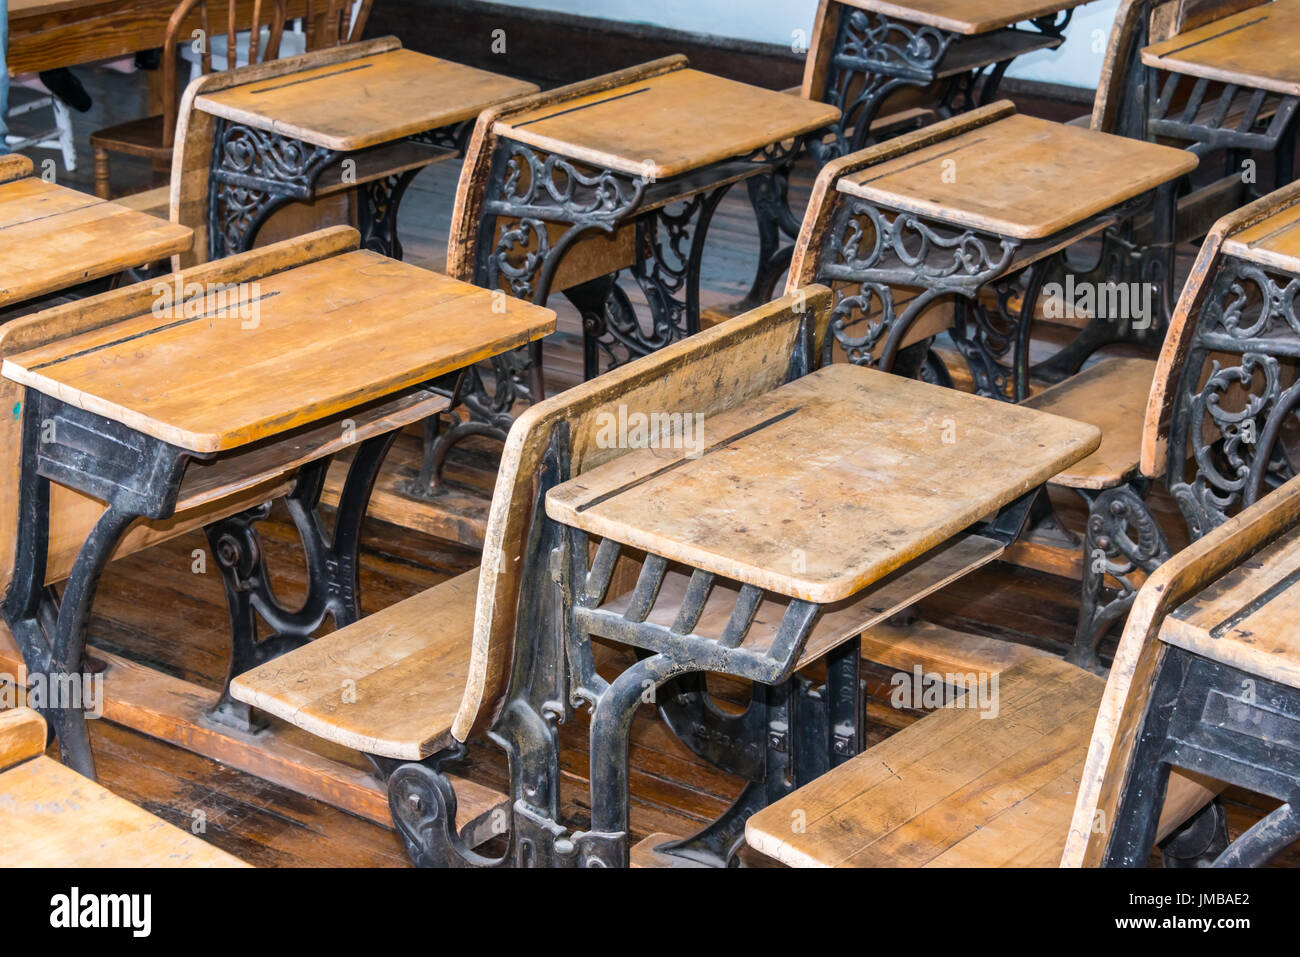 Vintage Wooden Desks in Classroom close Up Stock Photo - Alamy